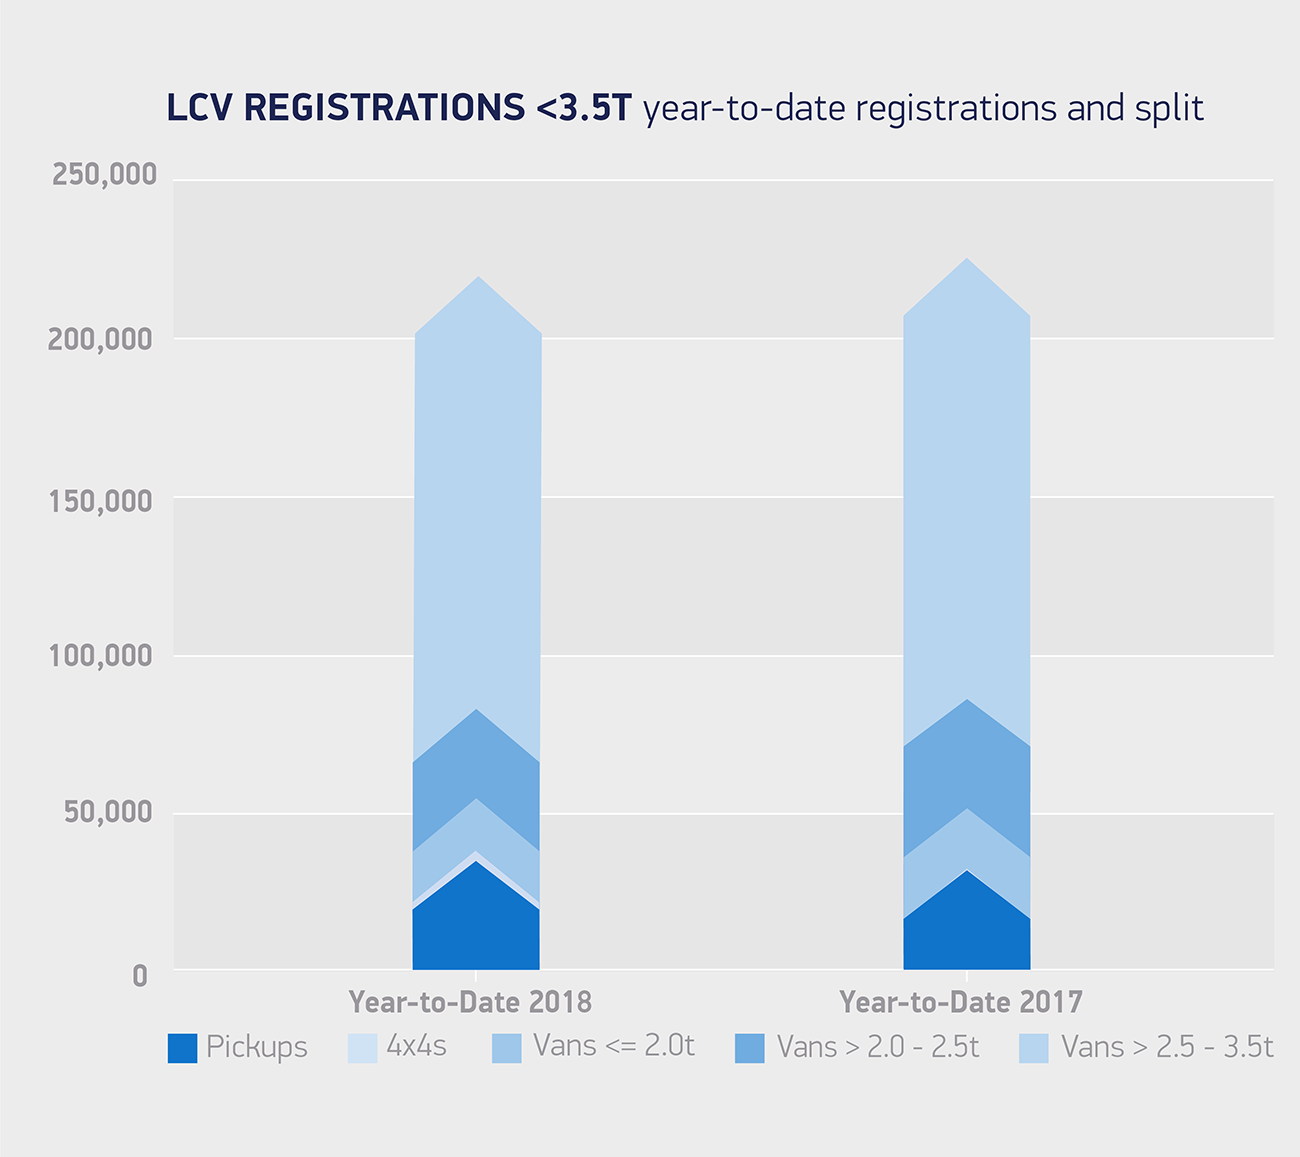 Van registrations 3 5T year-to-date registrations and split August 18